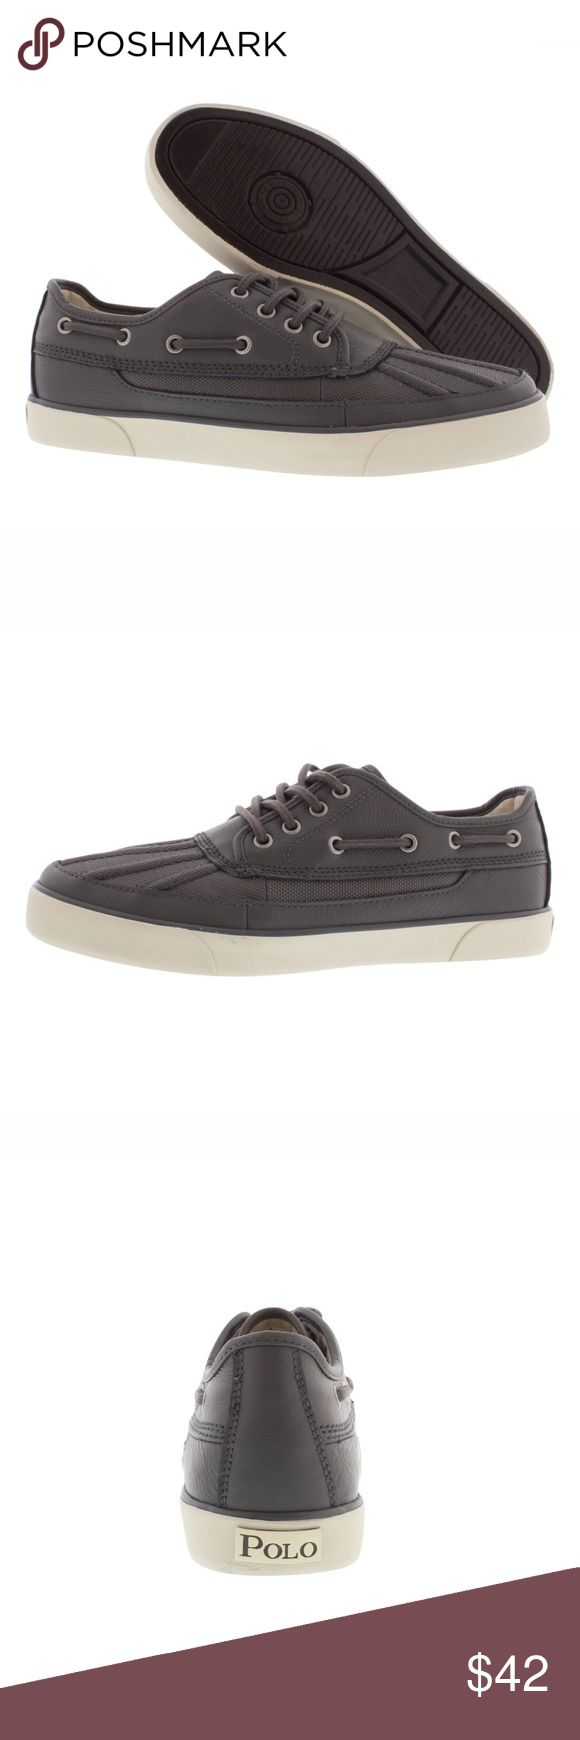 Polo Ralph Lauren Parkstone Low Boat shoe/sneaker Brand new. Black. Simply stylish and great to dress up or down Polo by Ralph Lauren Shoes Boat Shoes